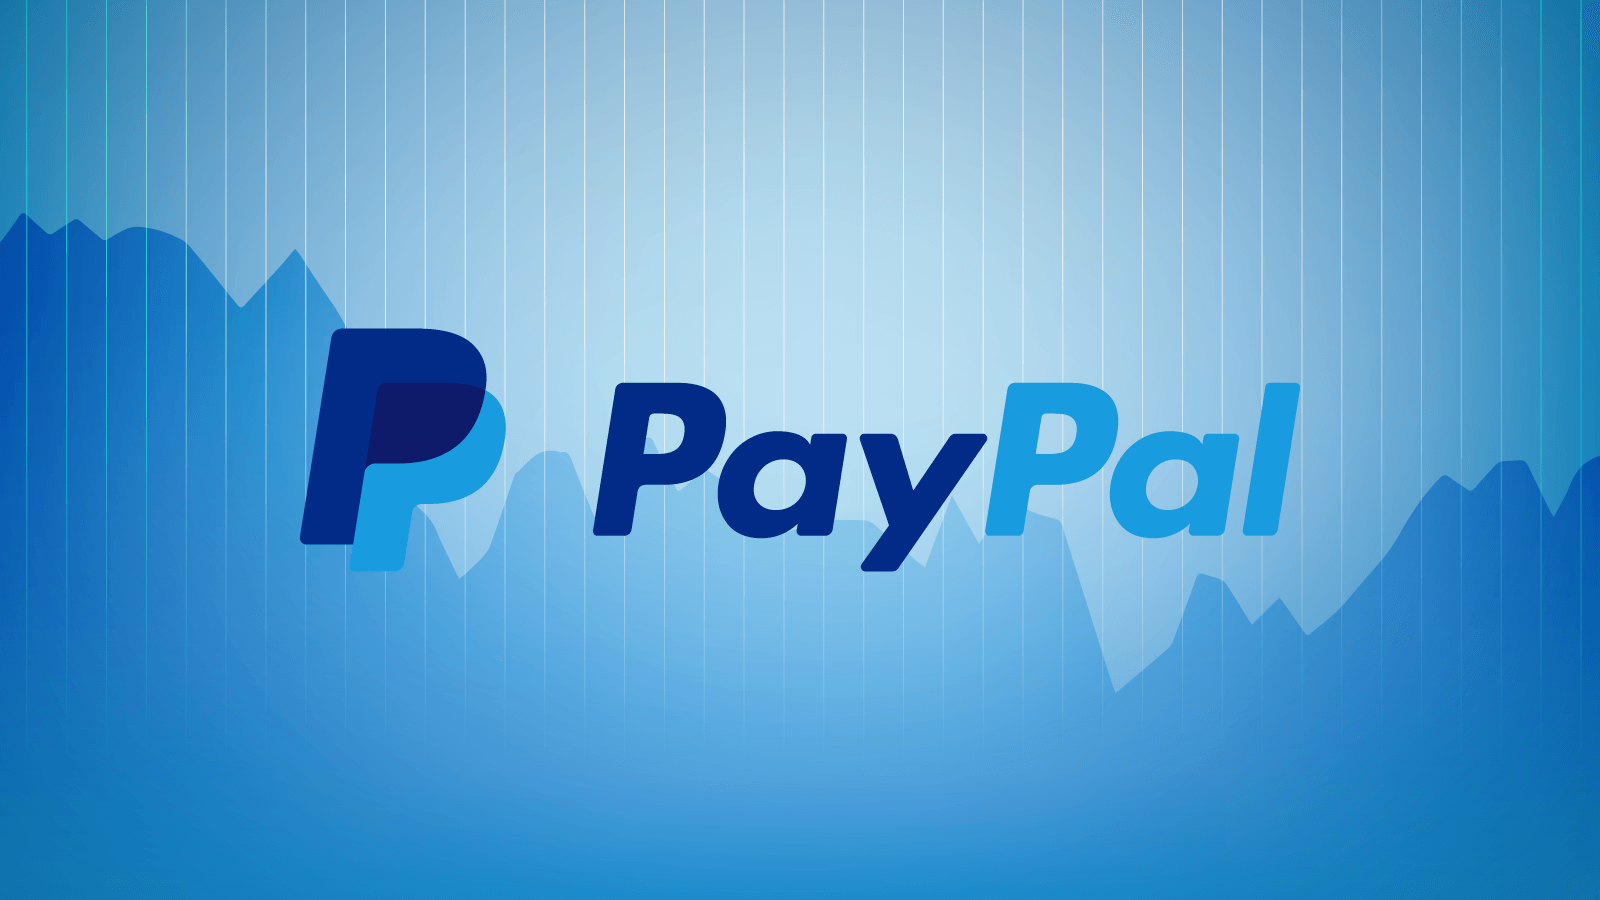 Paypal.png 1